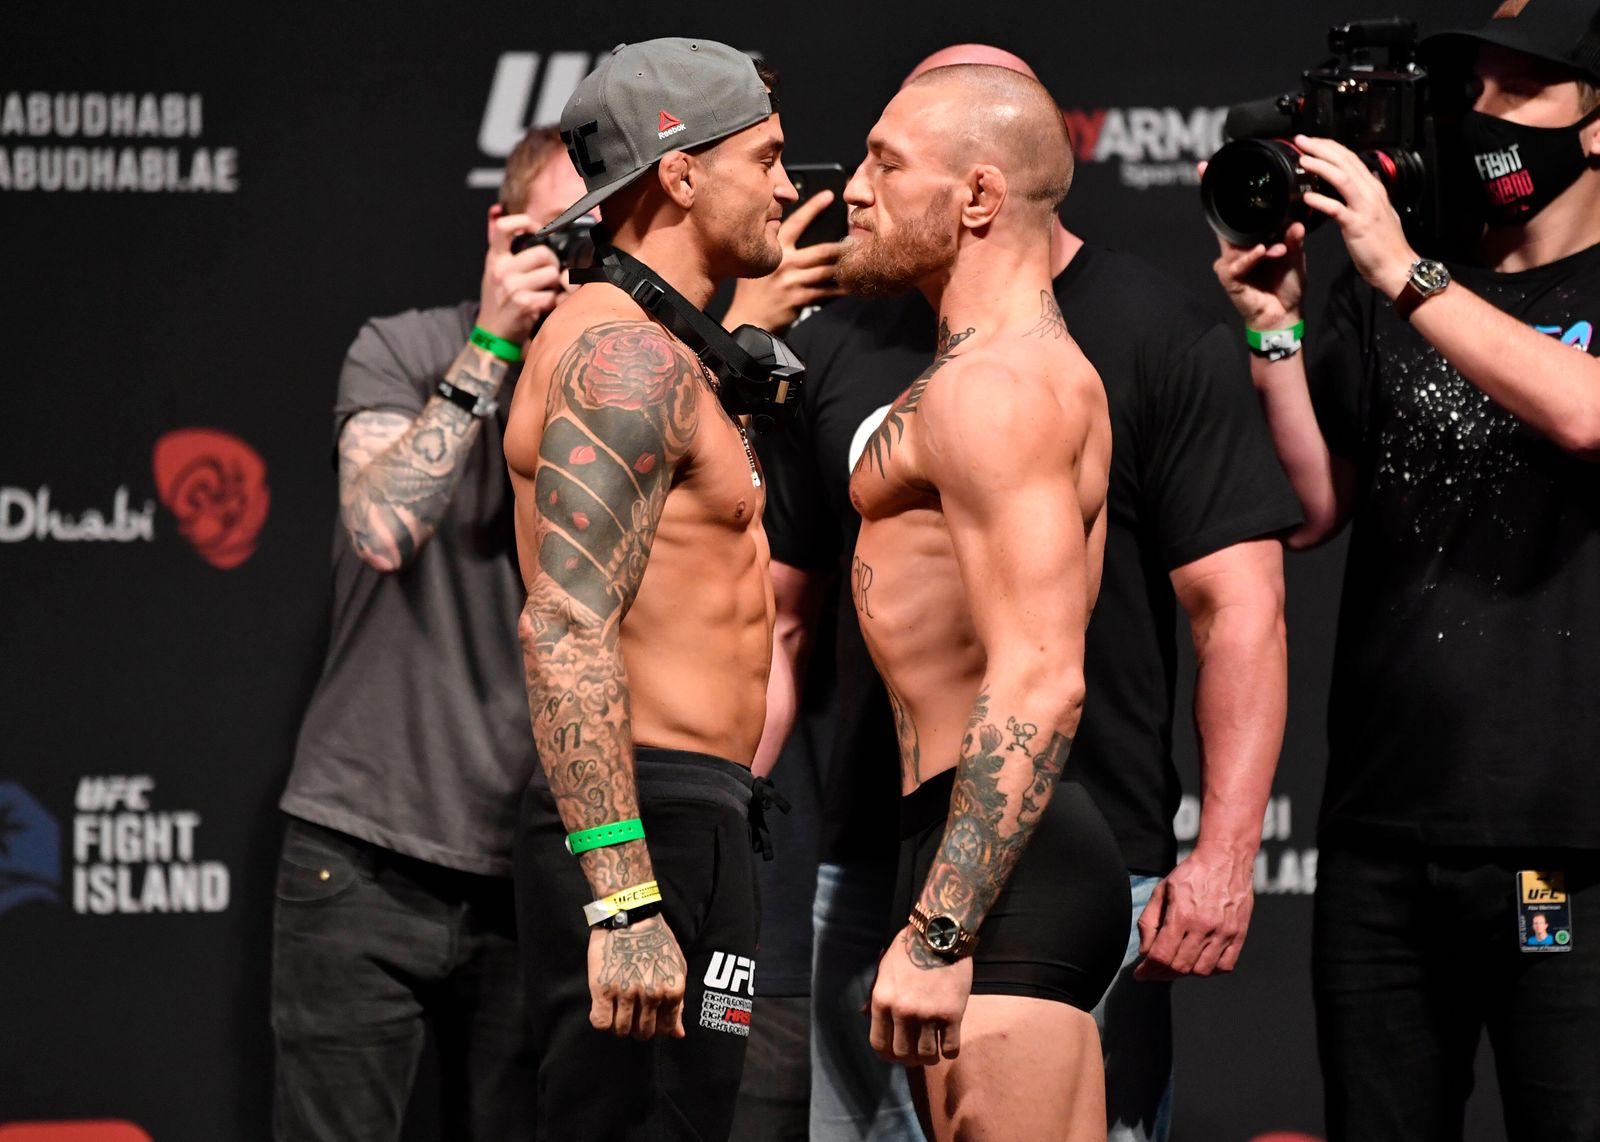 UFC, Wiegetermin in Abu Dhabi 210122 In this handout photo from Zuffa LLC Dustin Poirier and Conor McGregor face off dur